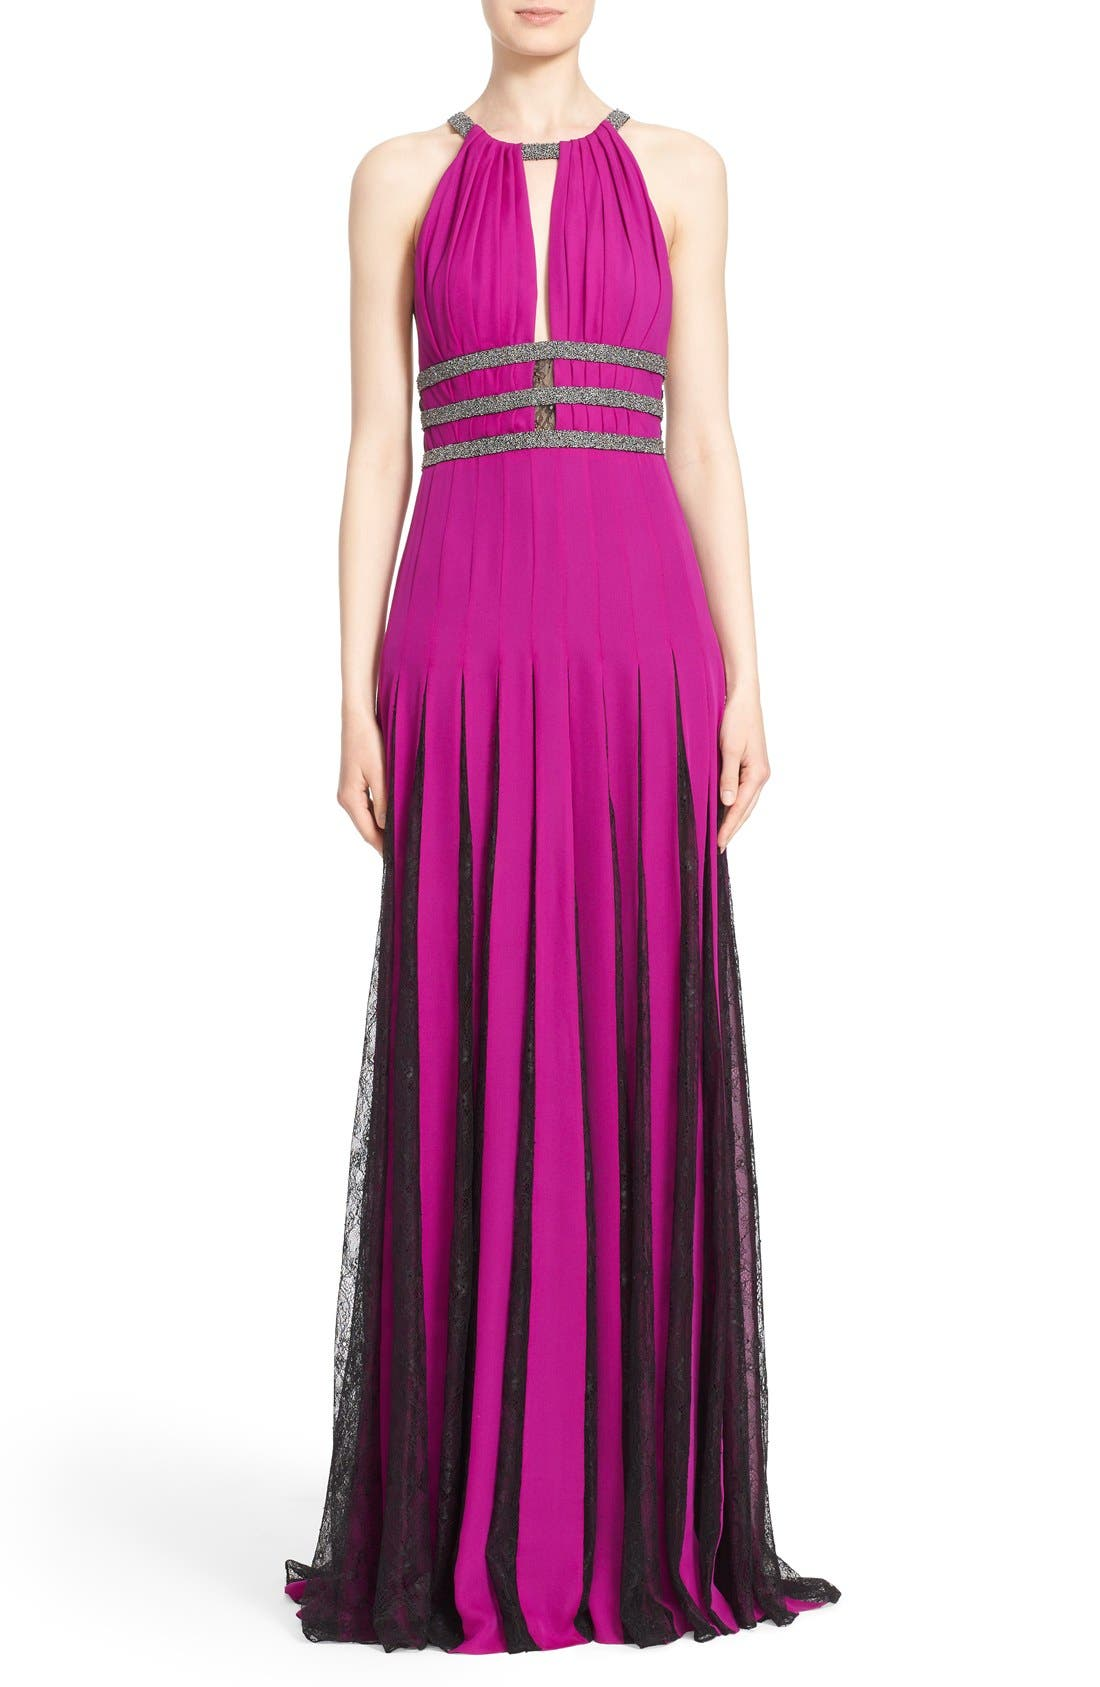 Couture Silk Halter Gown with Lace Pleats,                             Main thumbnail 1, color,                             Orchid/ Smoke